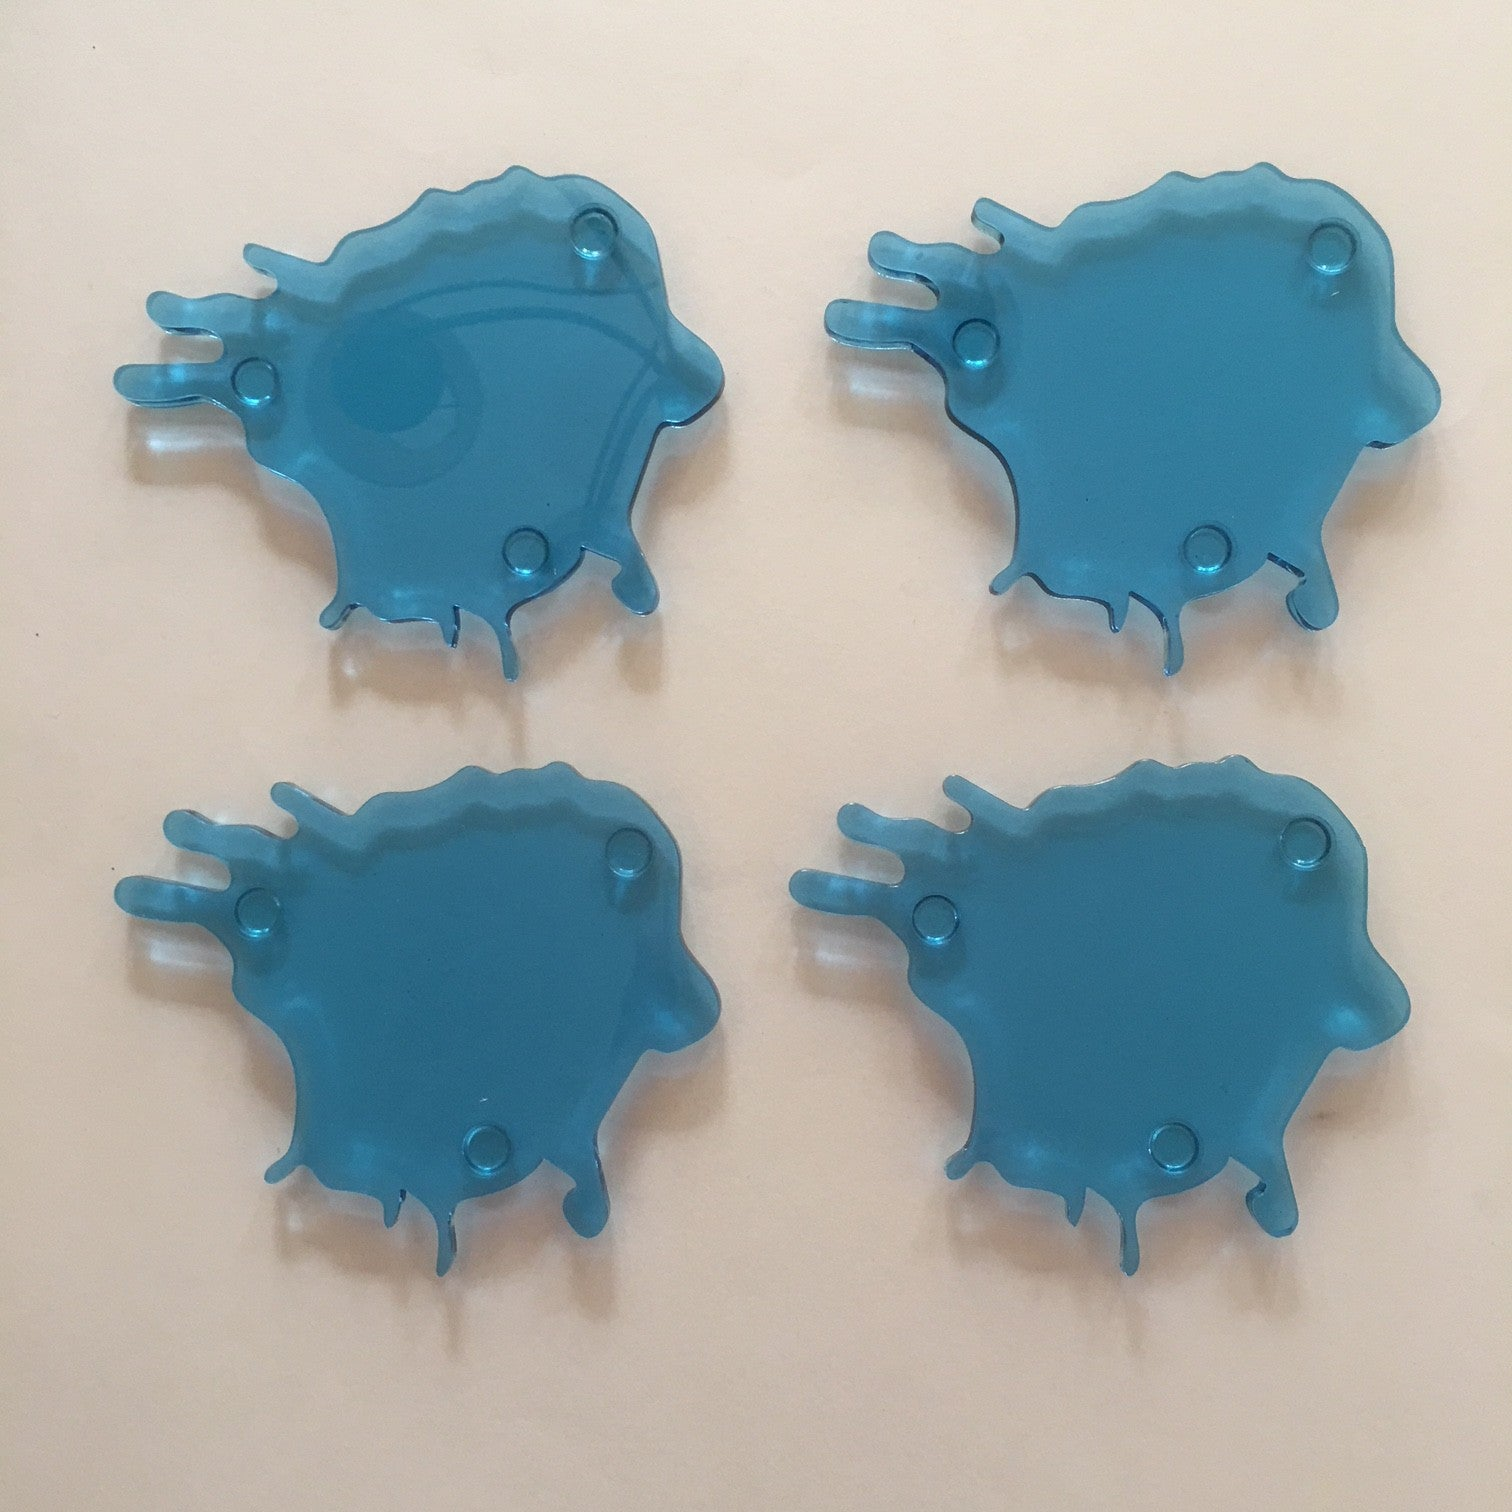 acrylic water spill coasters